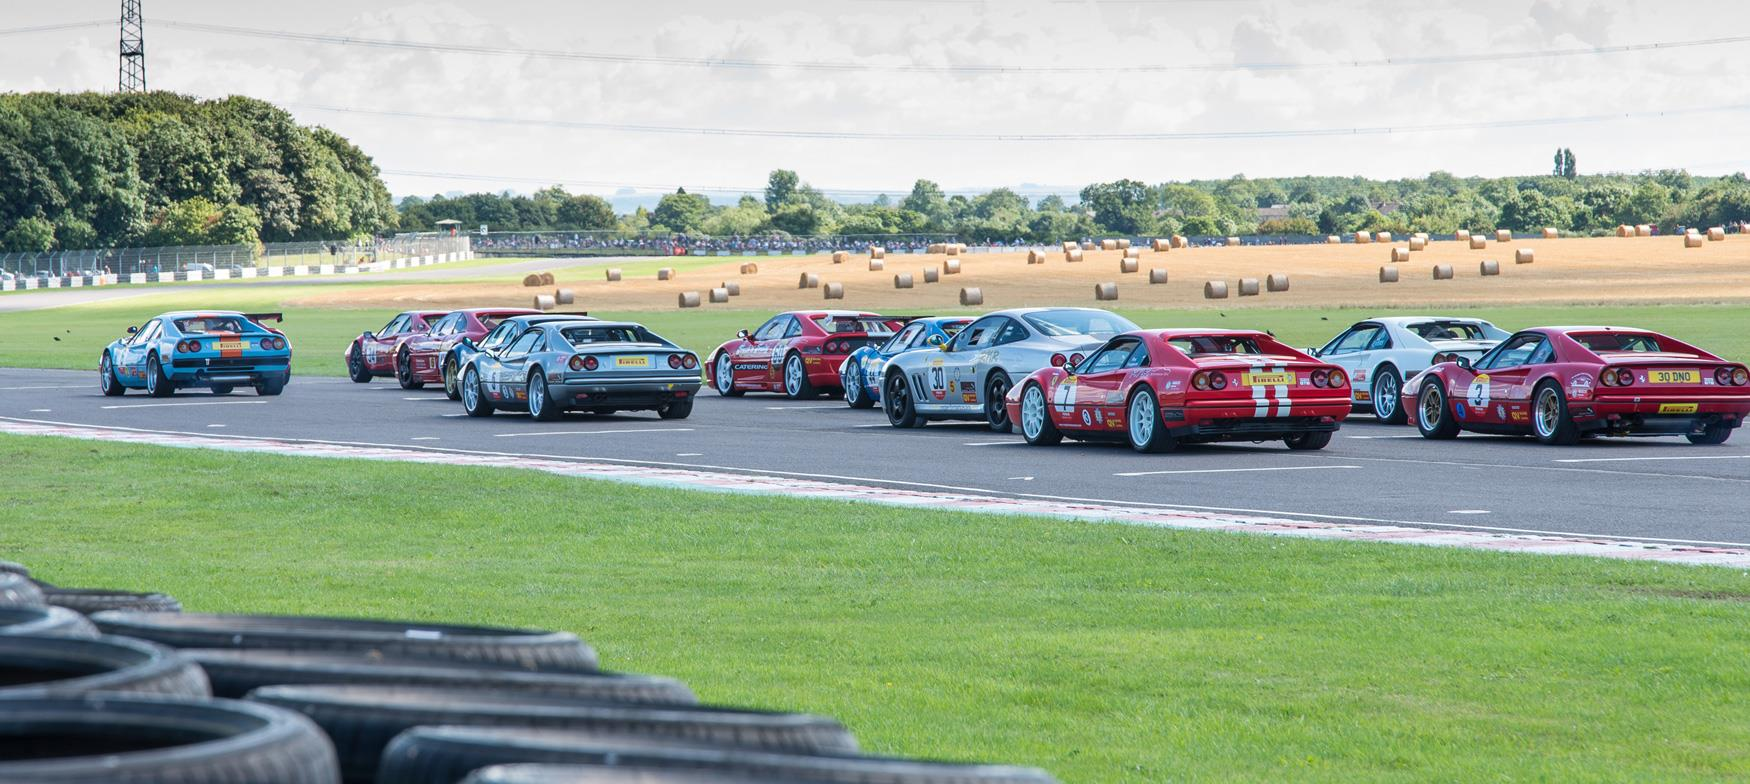 Feel the Need for Speed at Castle Combe Circuit